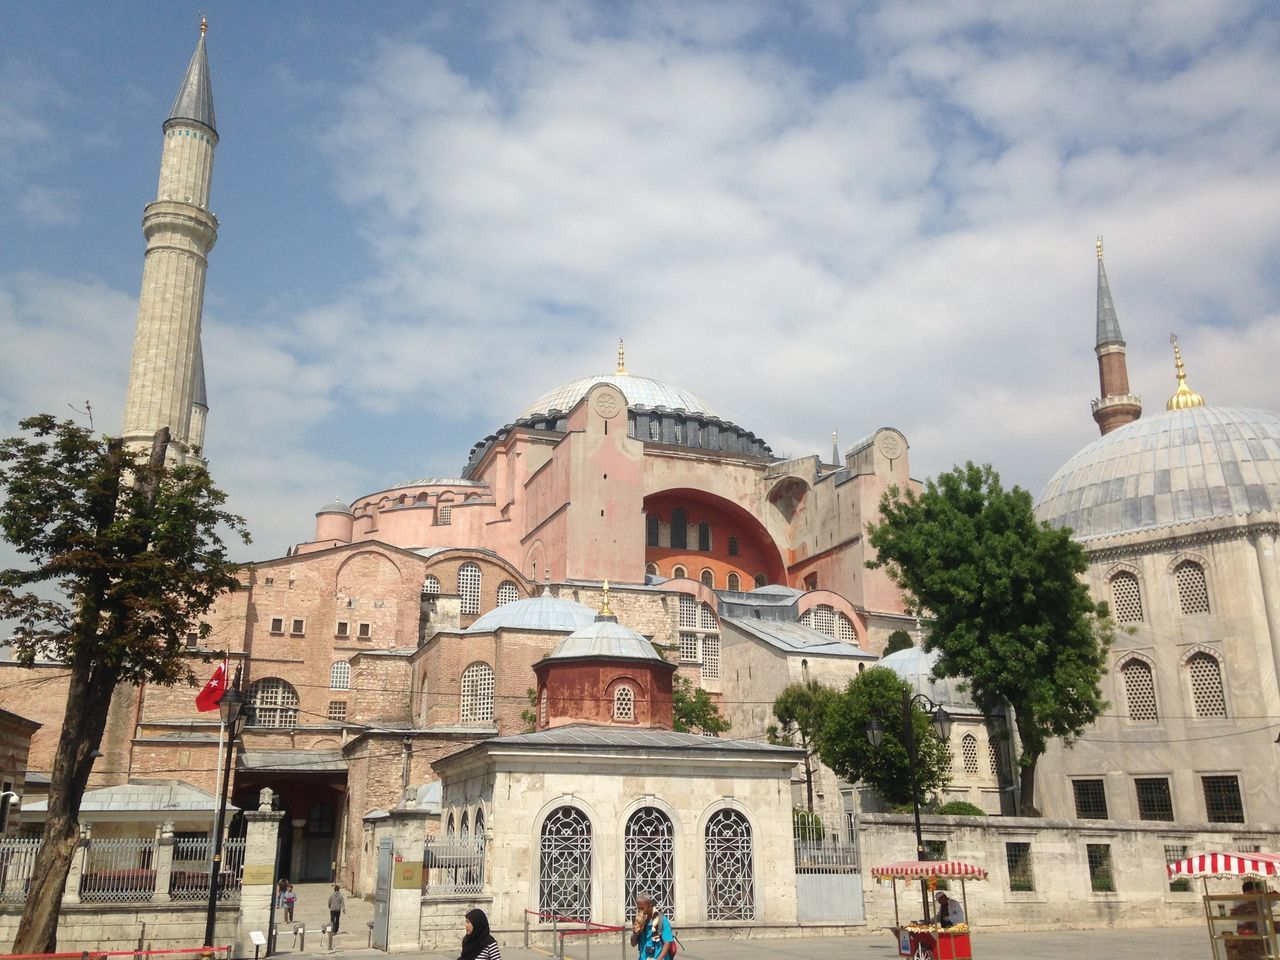 The Rendez-vous of 2 religions Ayasofya Building Exterior Built Structure Cloud - Sky Dome Hagiasophia  Istanbul Istanbul Turkey Outdoors Place Of Worship Religion Sky Travel Destinations